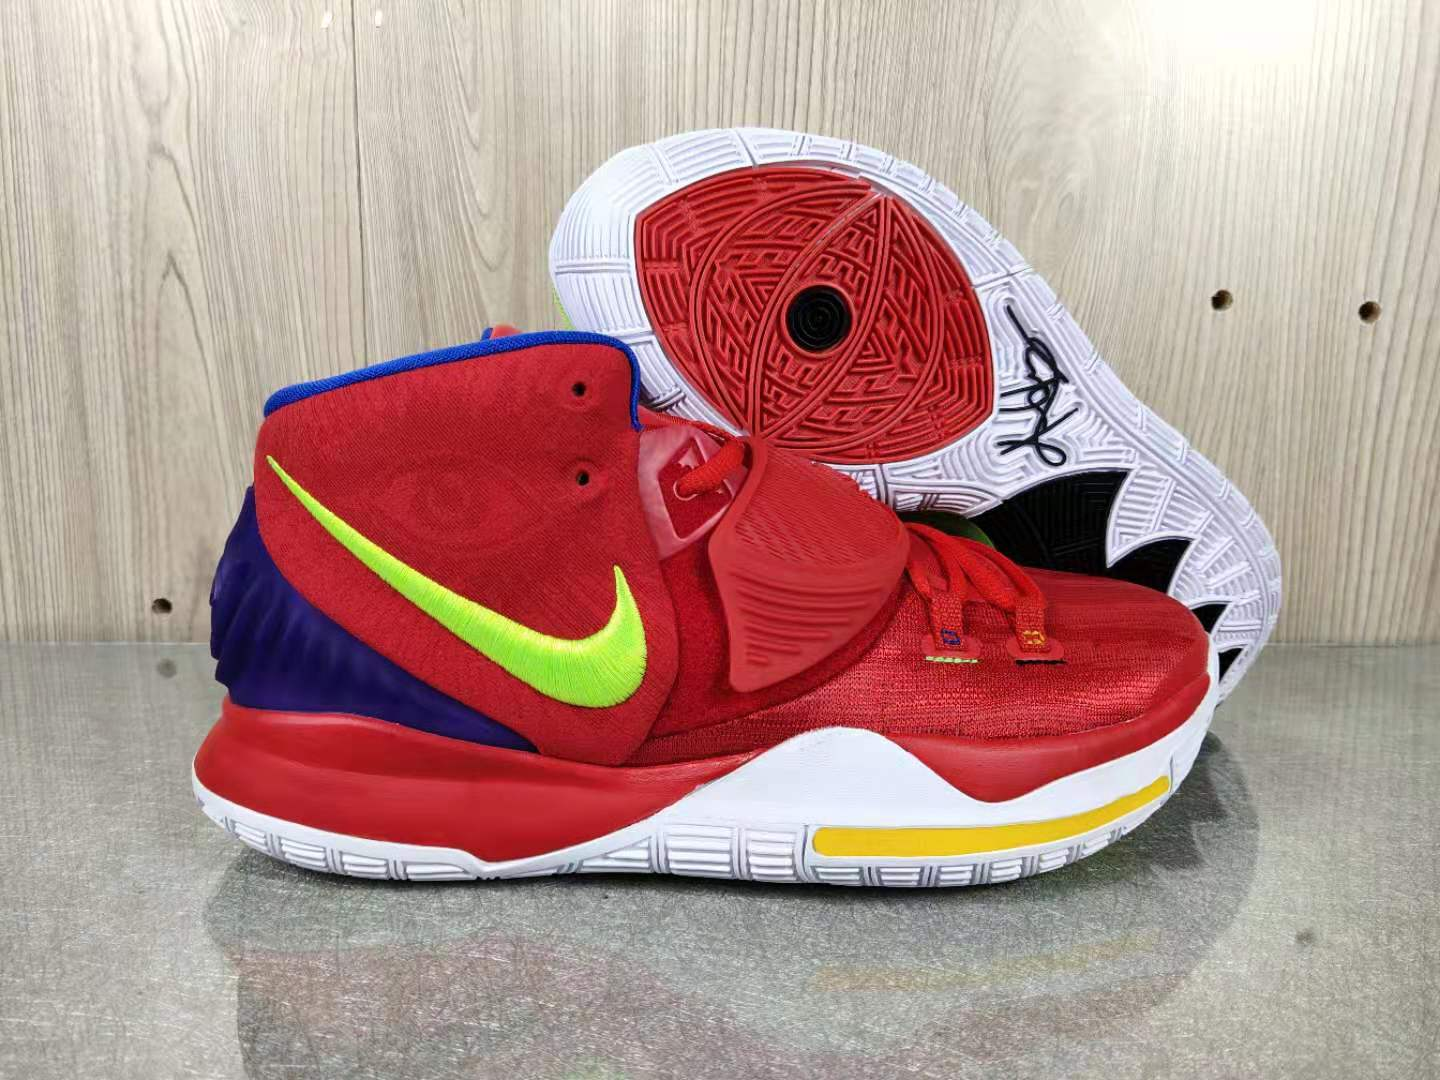 2020 Nike Kyrie 6 Red Green Yellow Shoes